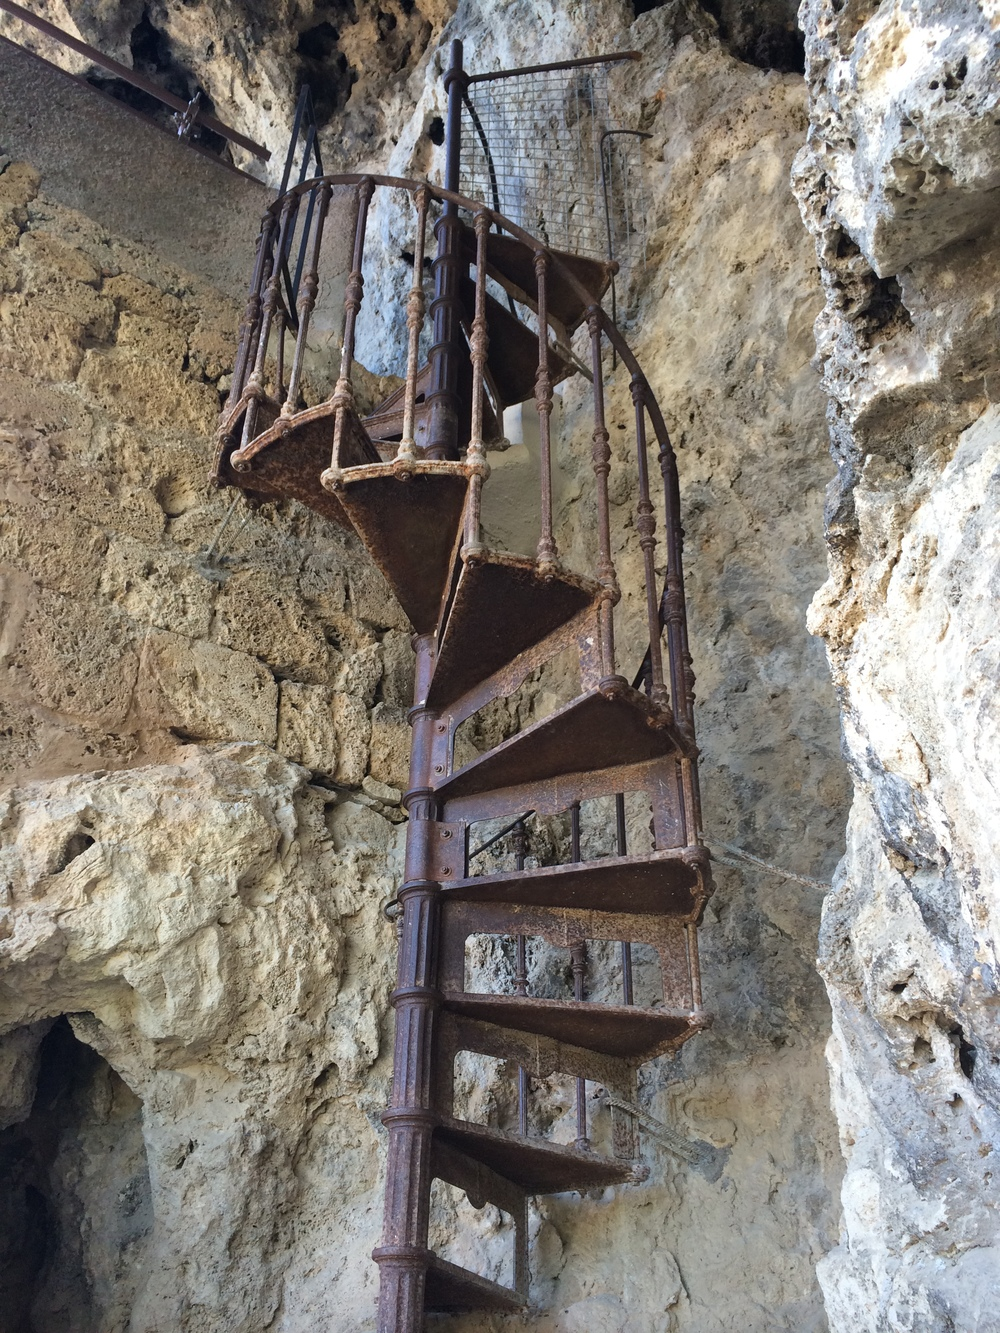 Would you climb these stairs?